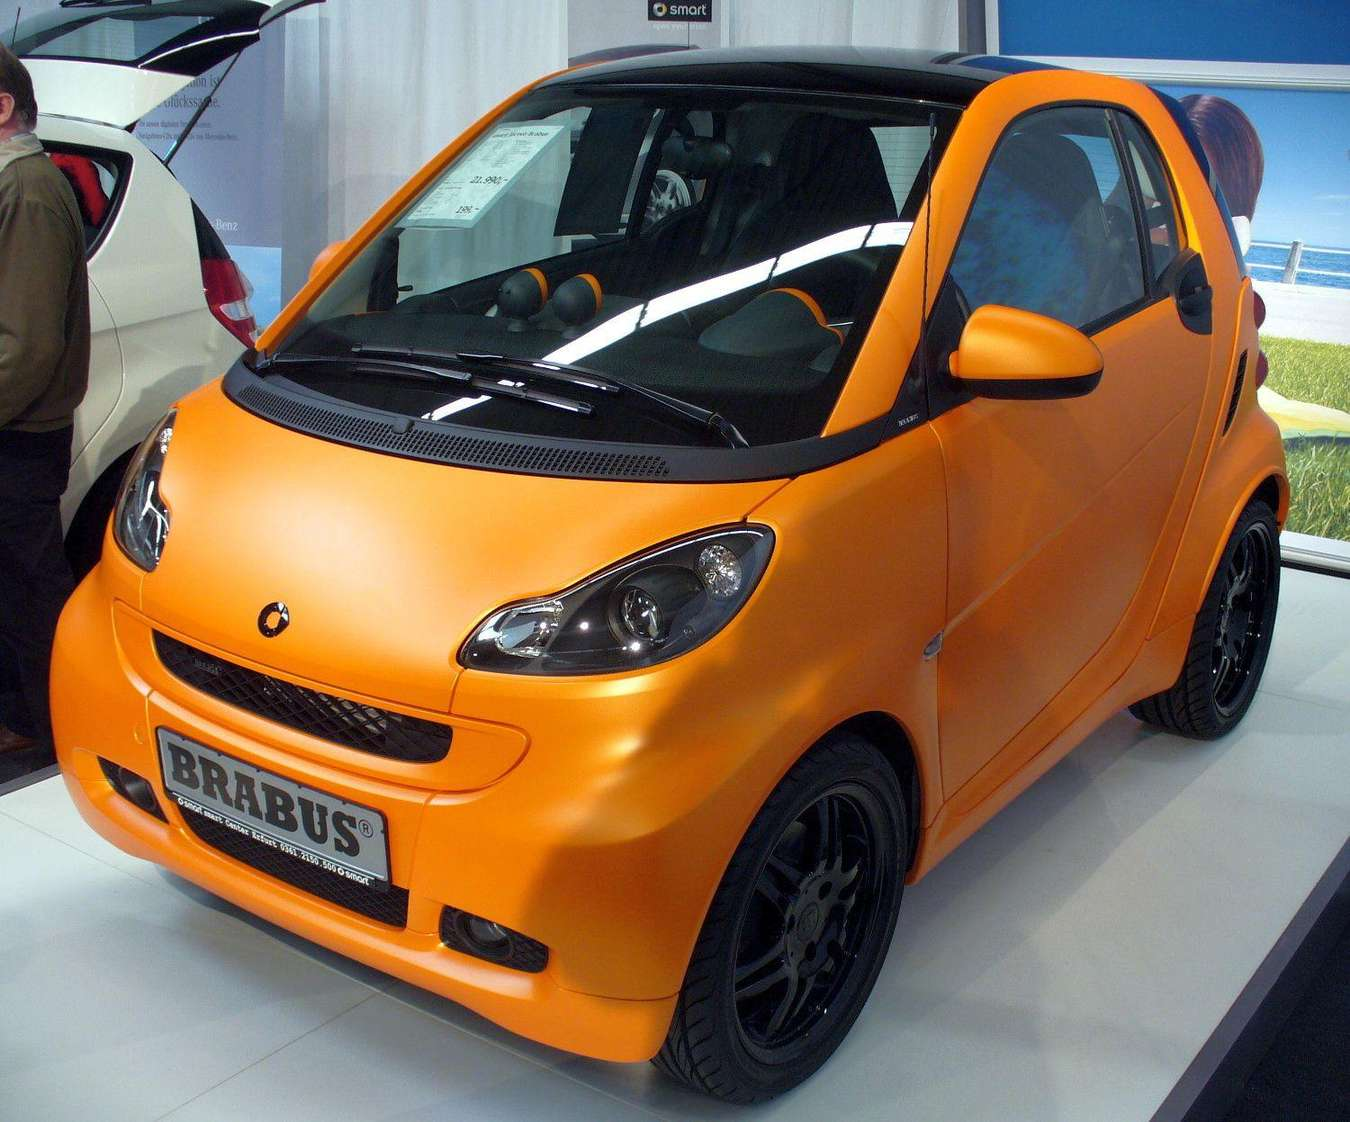 smart Fortwo Brabus #9986217